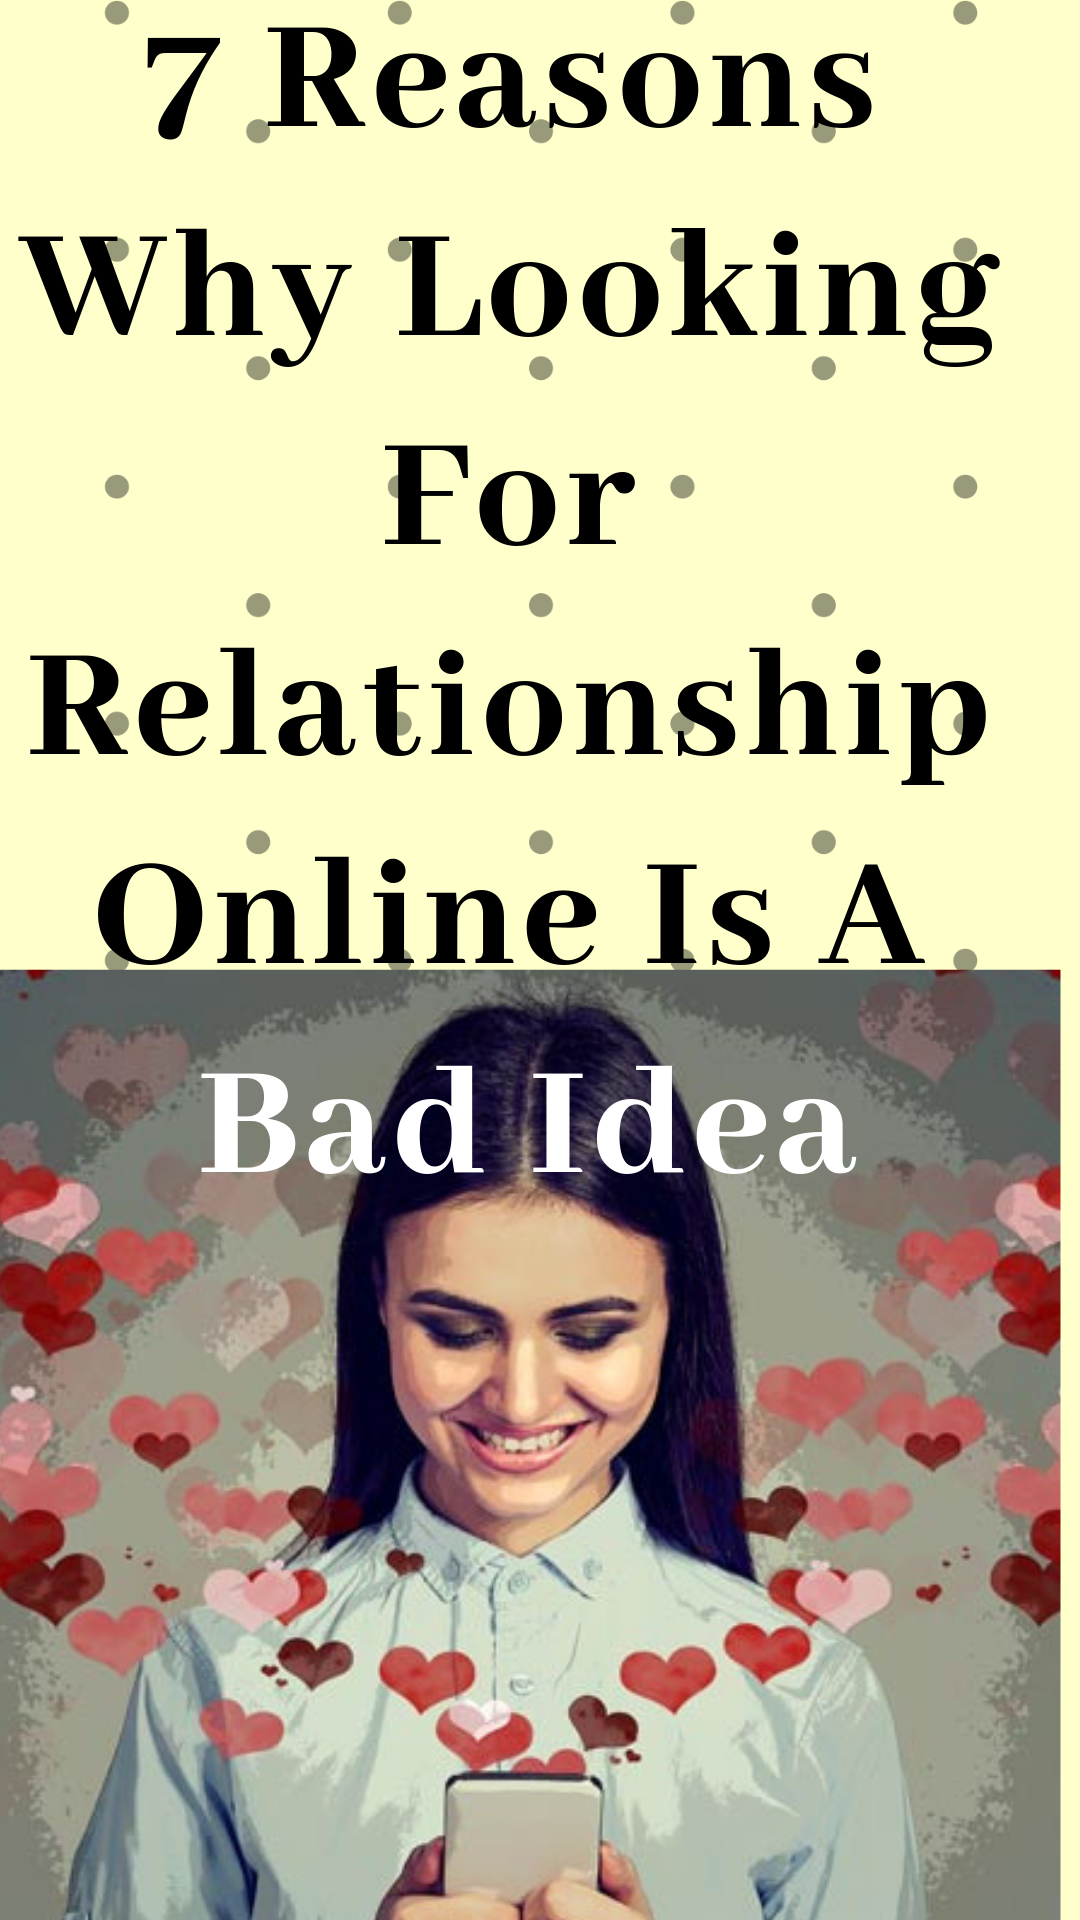 Online dating good or bad idea